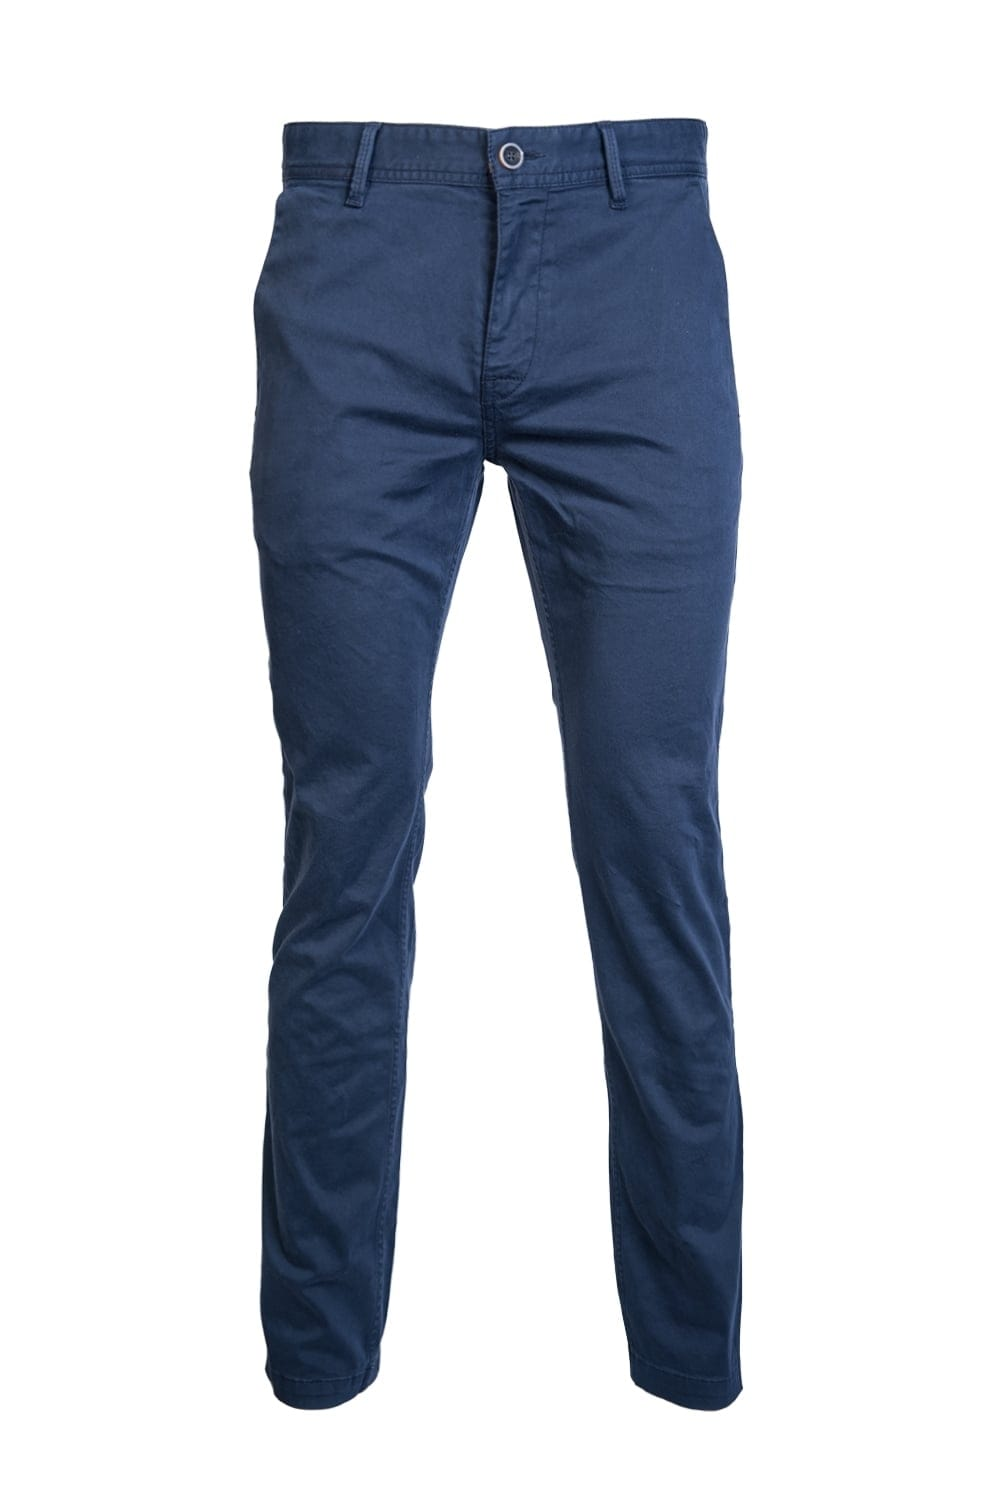 buy best top-rated discount shades of BOSS Chino Trousers Slim Fit model